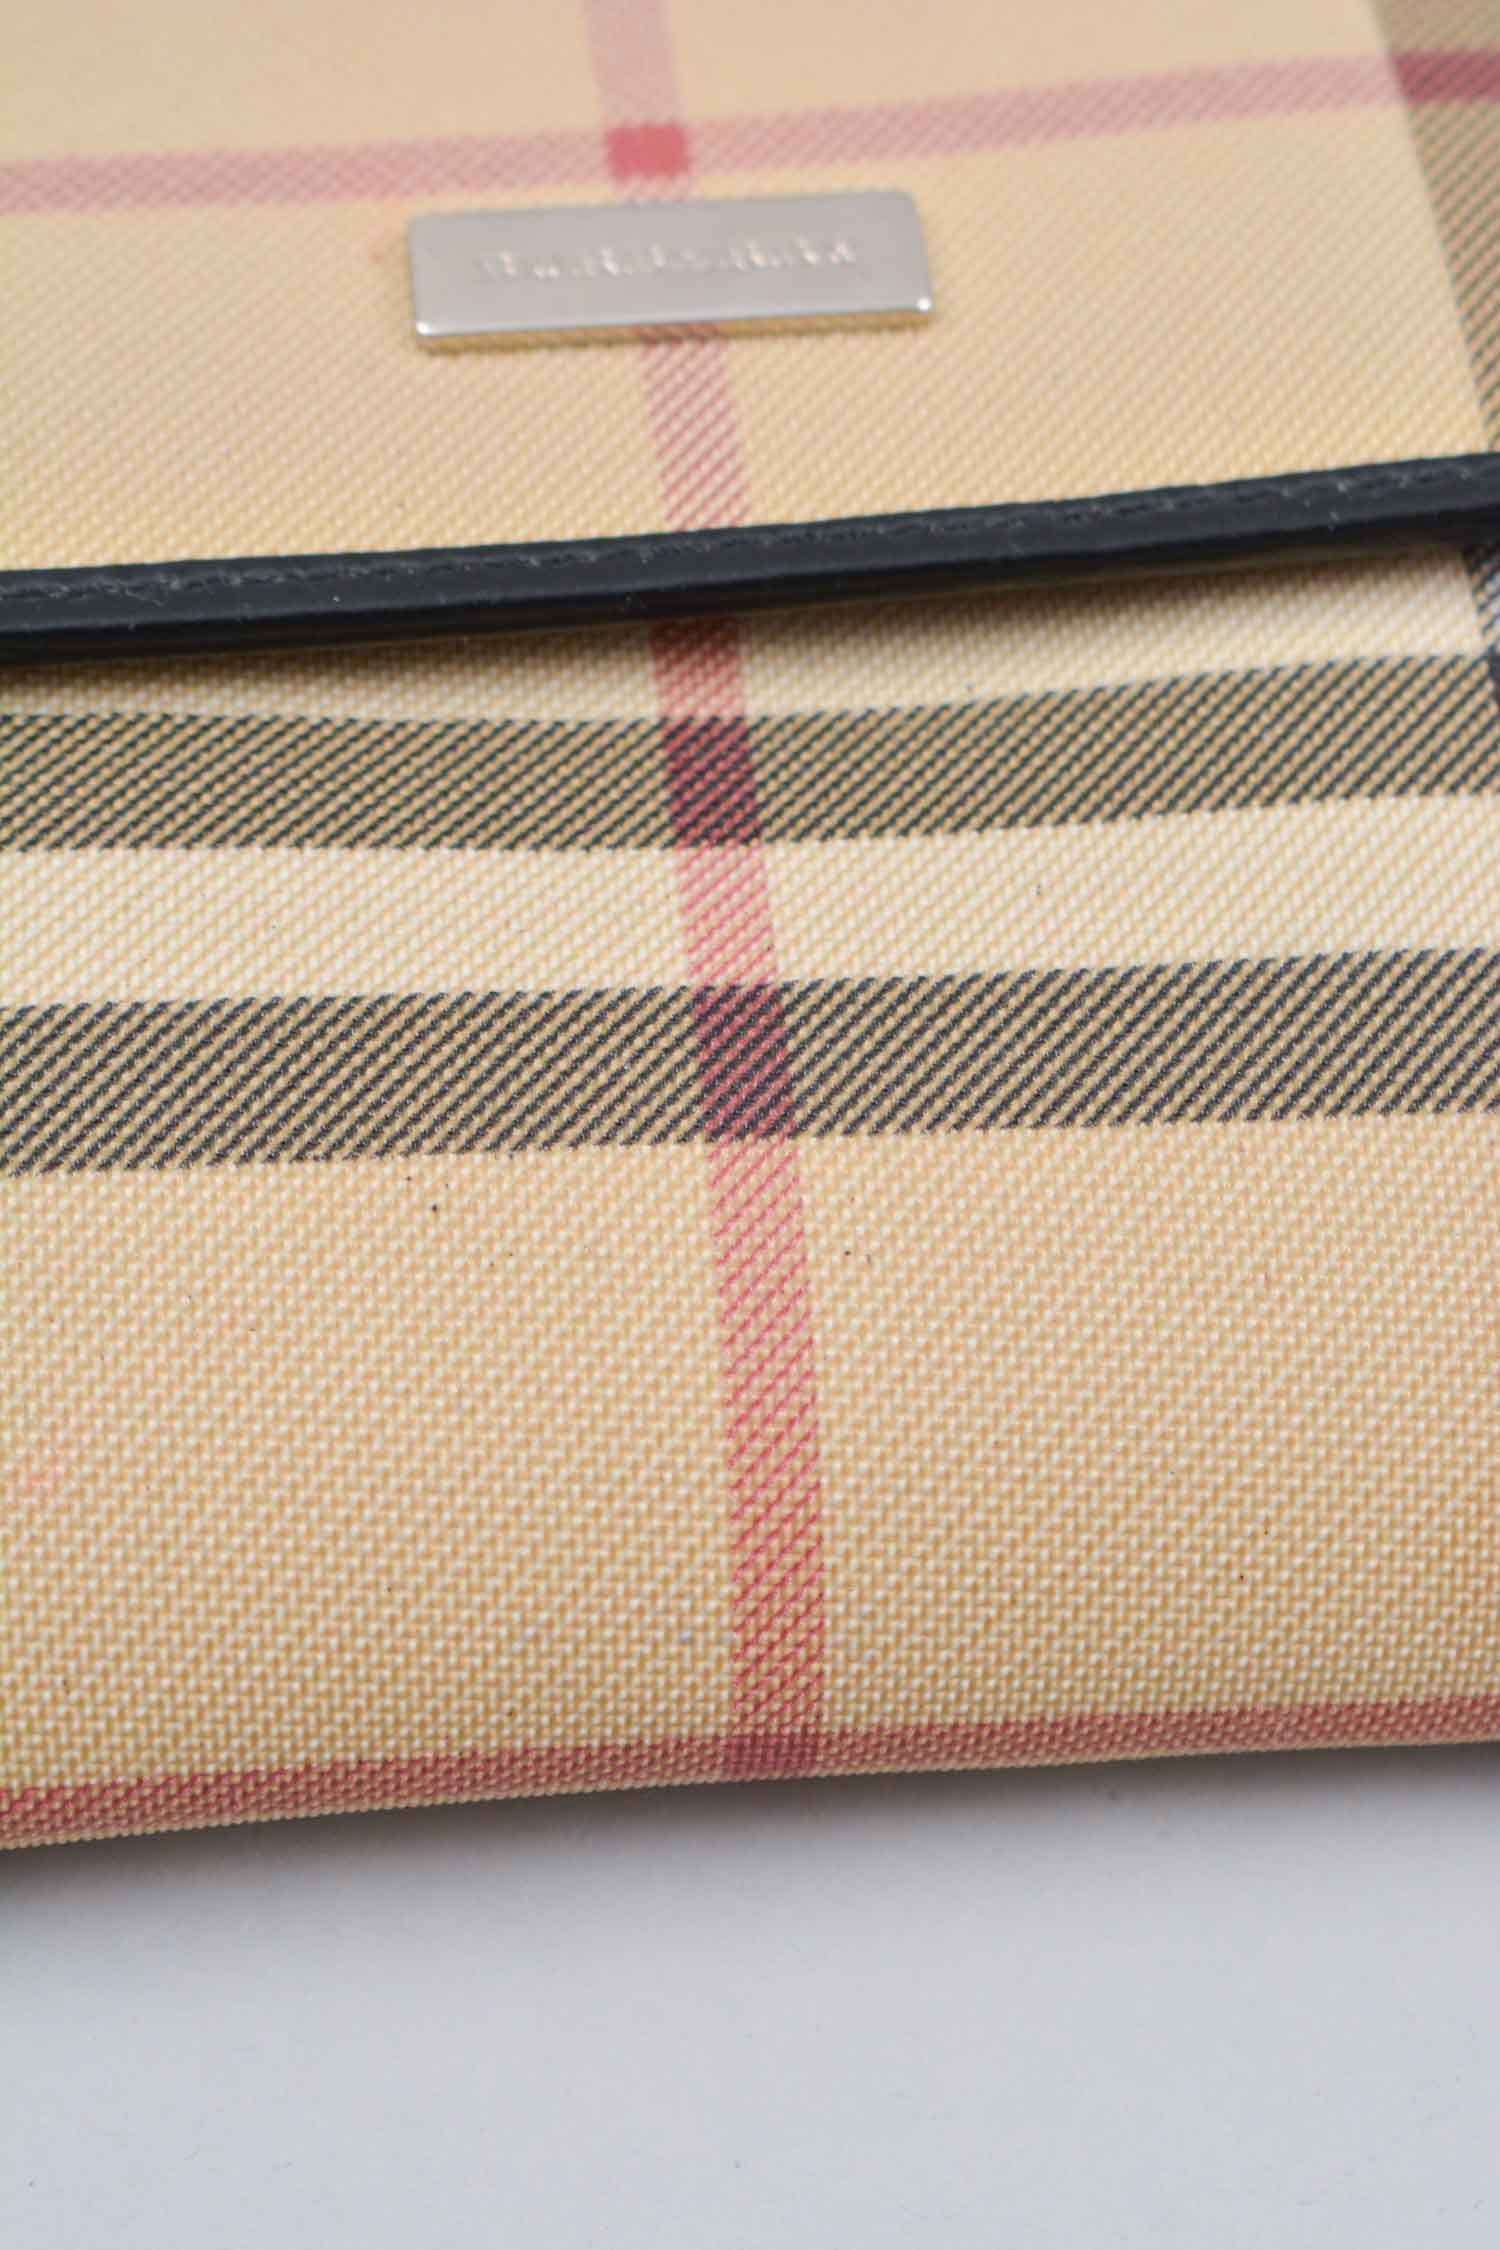 Burberry House Check Coated Canvas Wallet